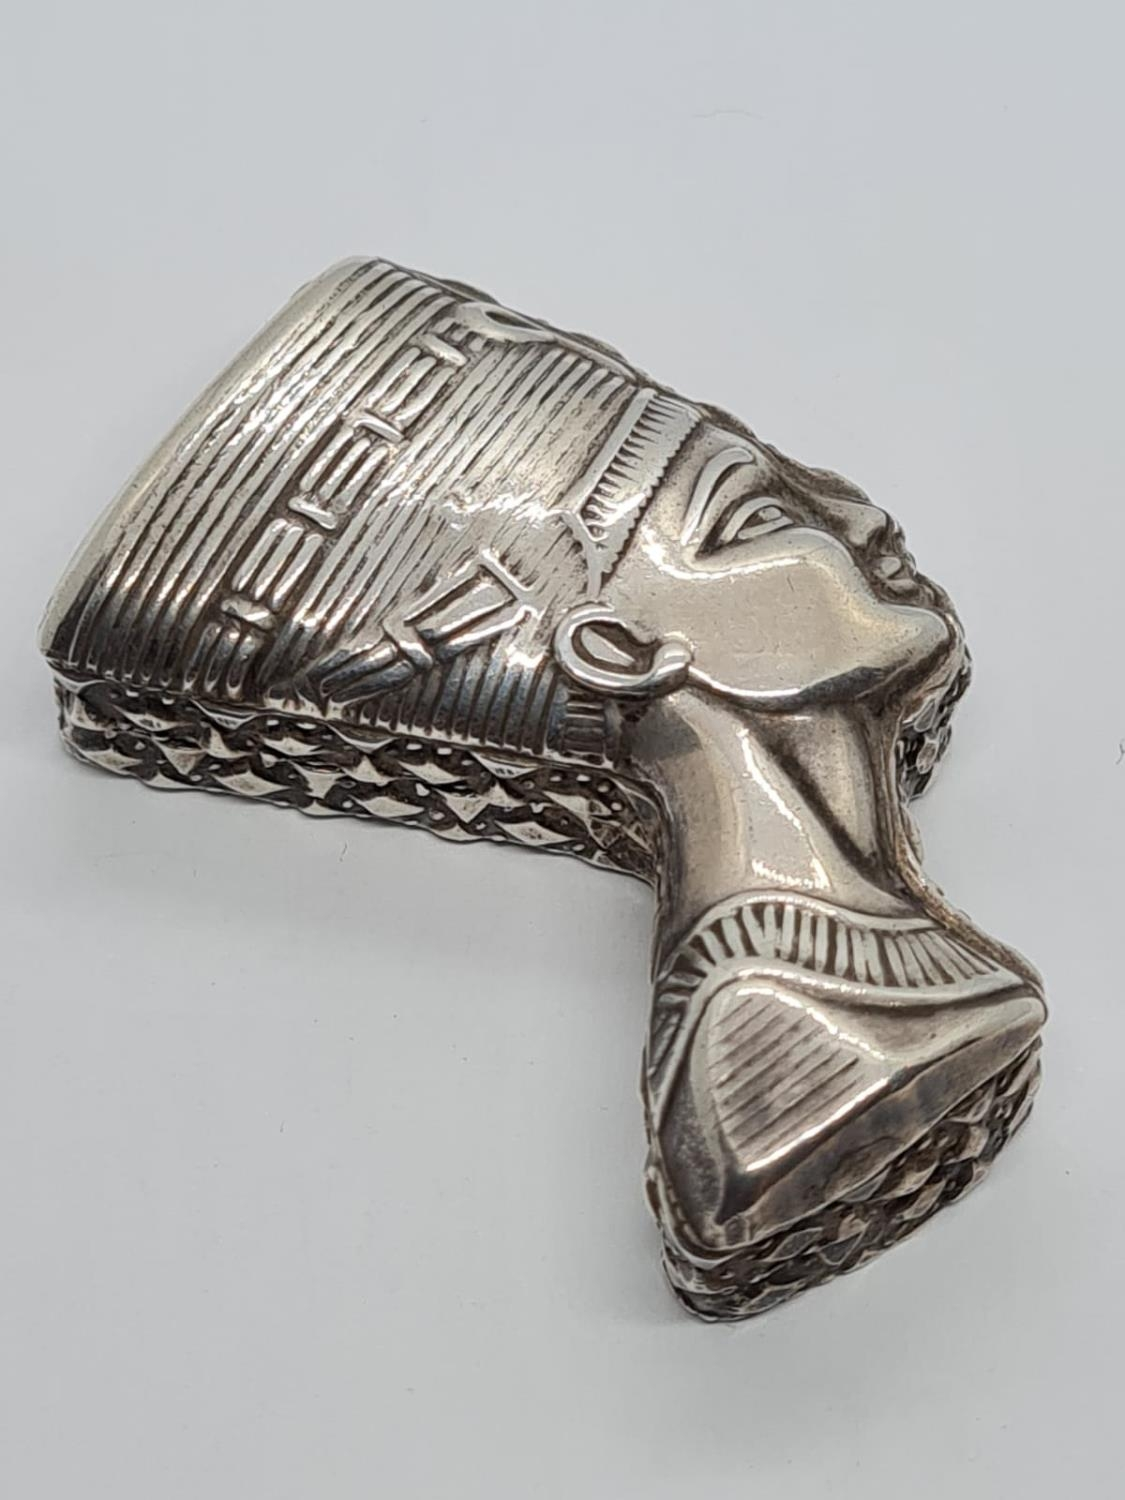 Novelty Islamic Silver Pill Box. In the form of Egyptian Nefertiti. 5.1 cm. 29g - Image 2 of 5